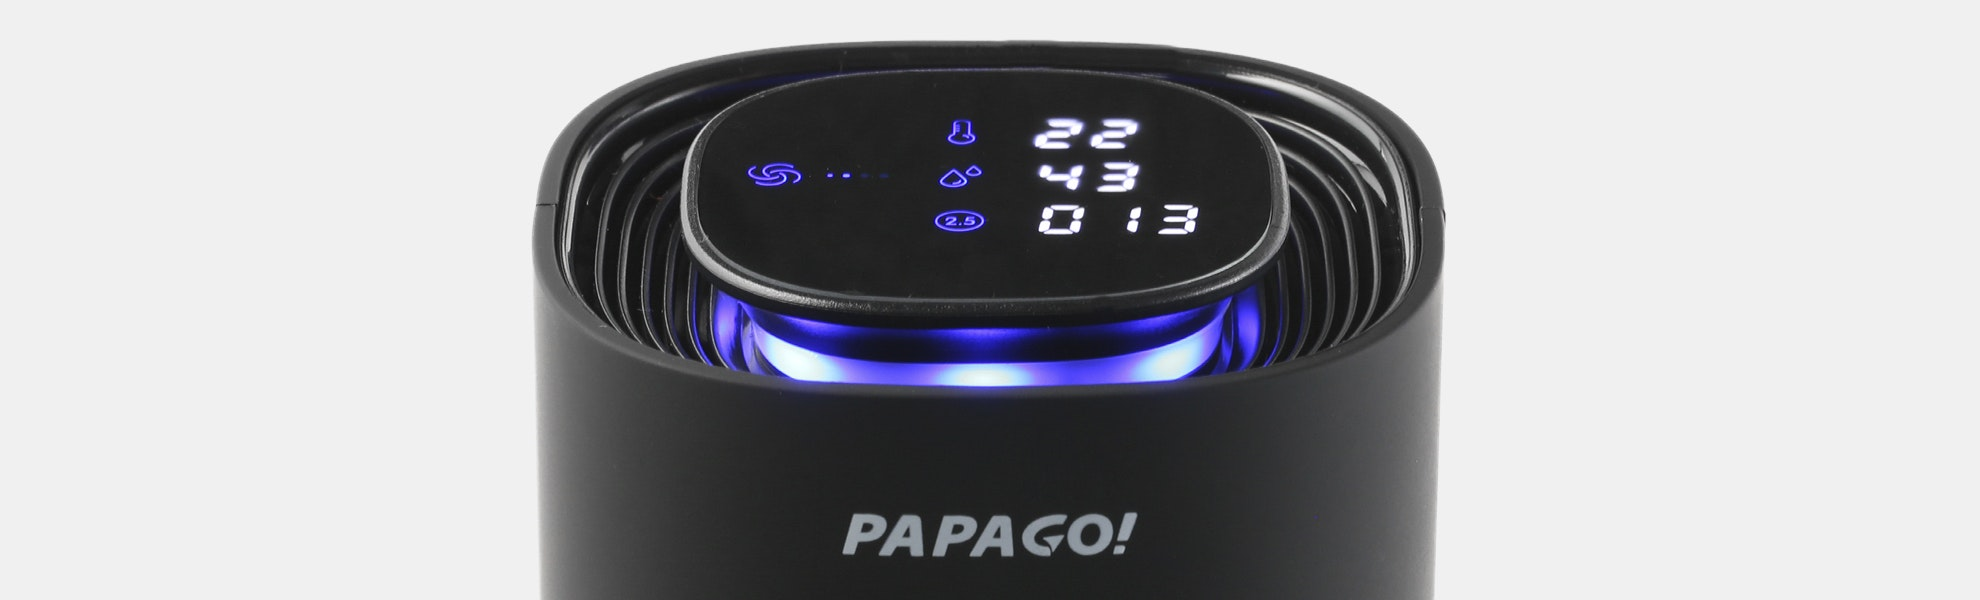 Papago S10D Air Purifier